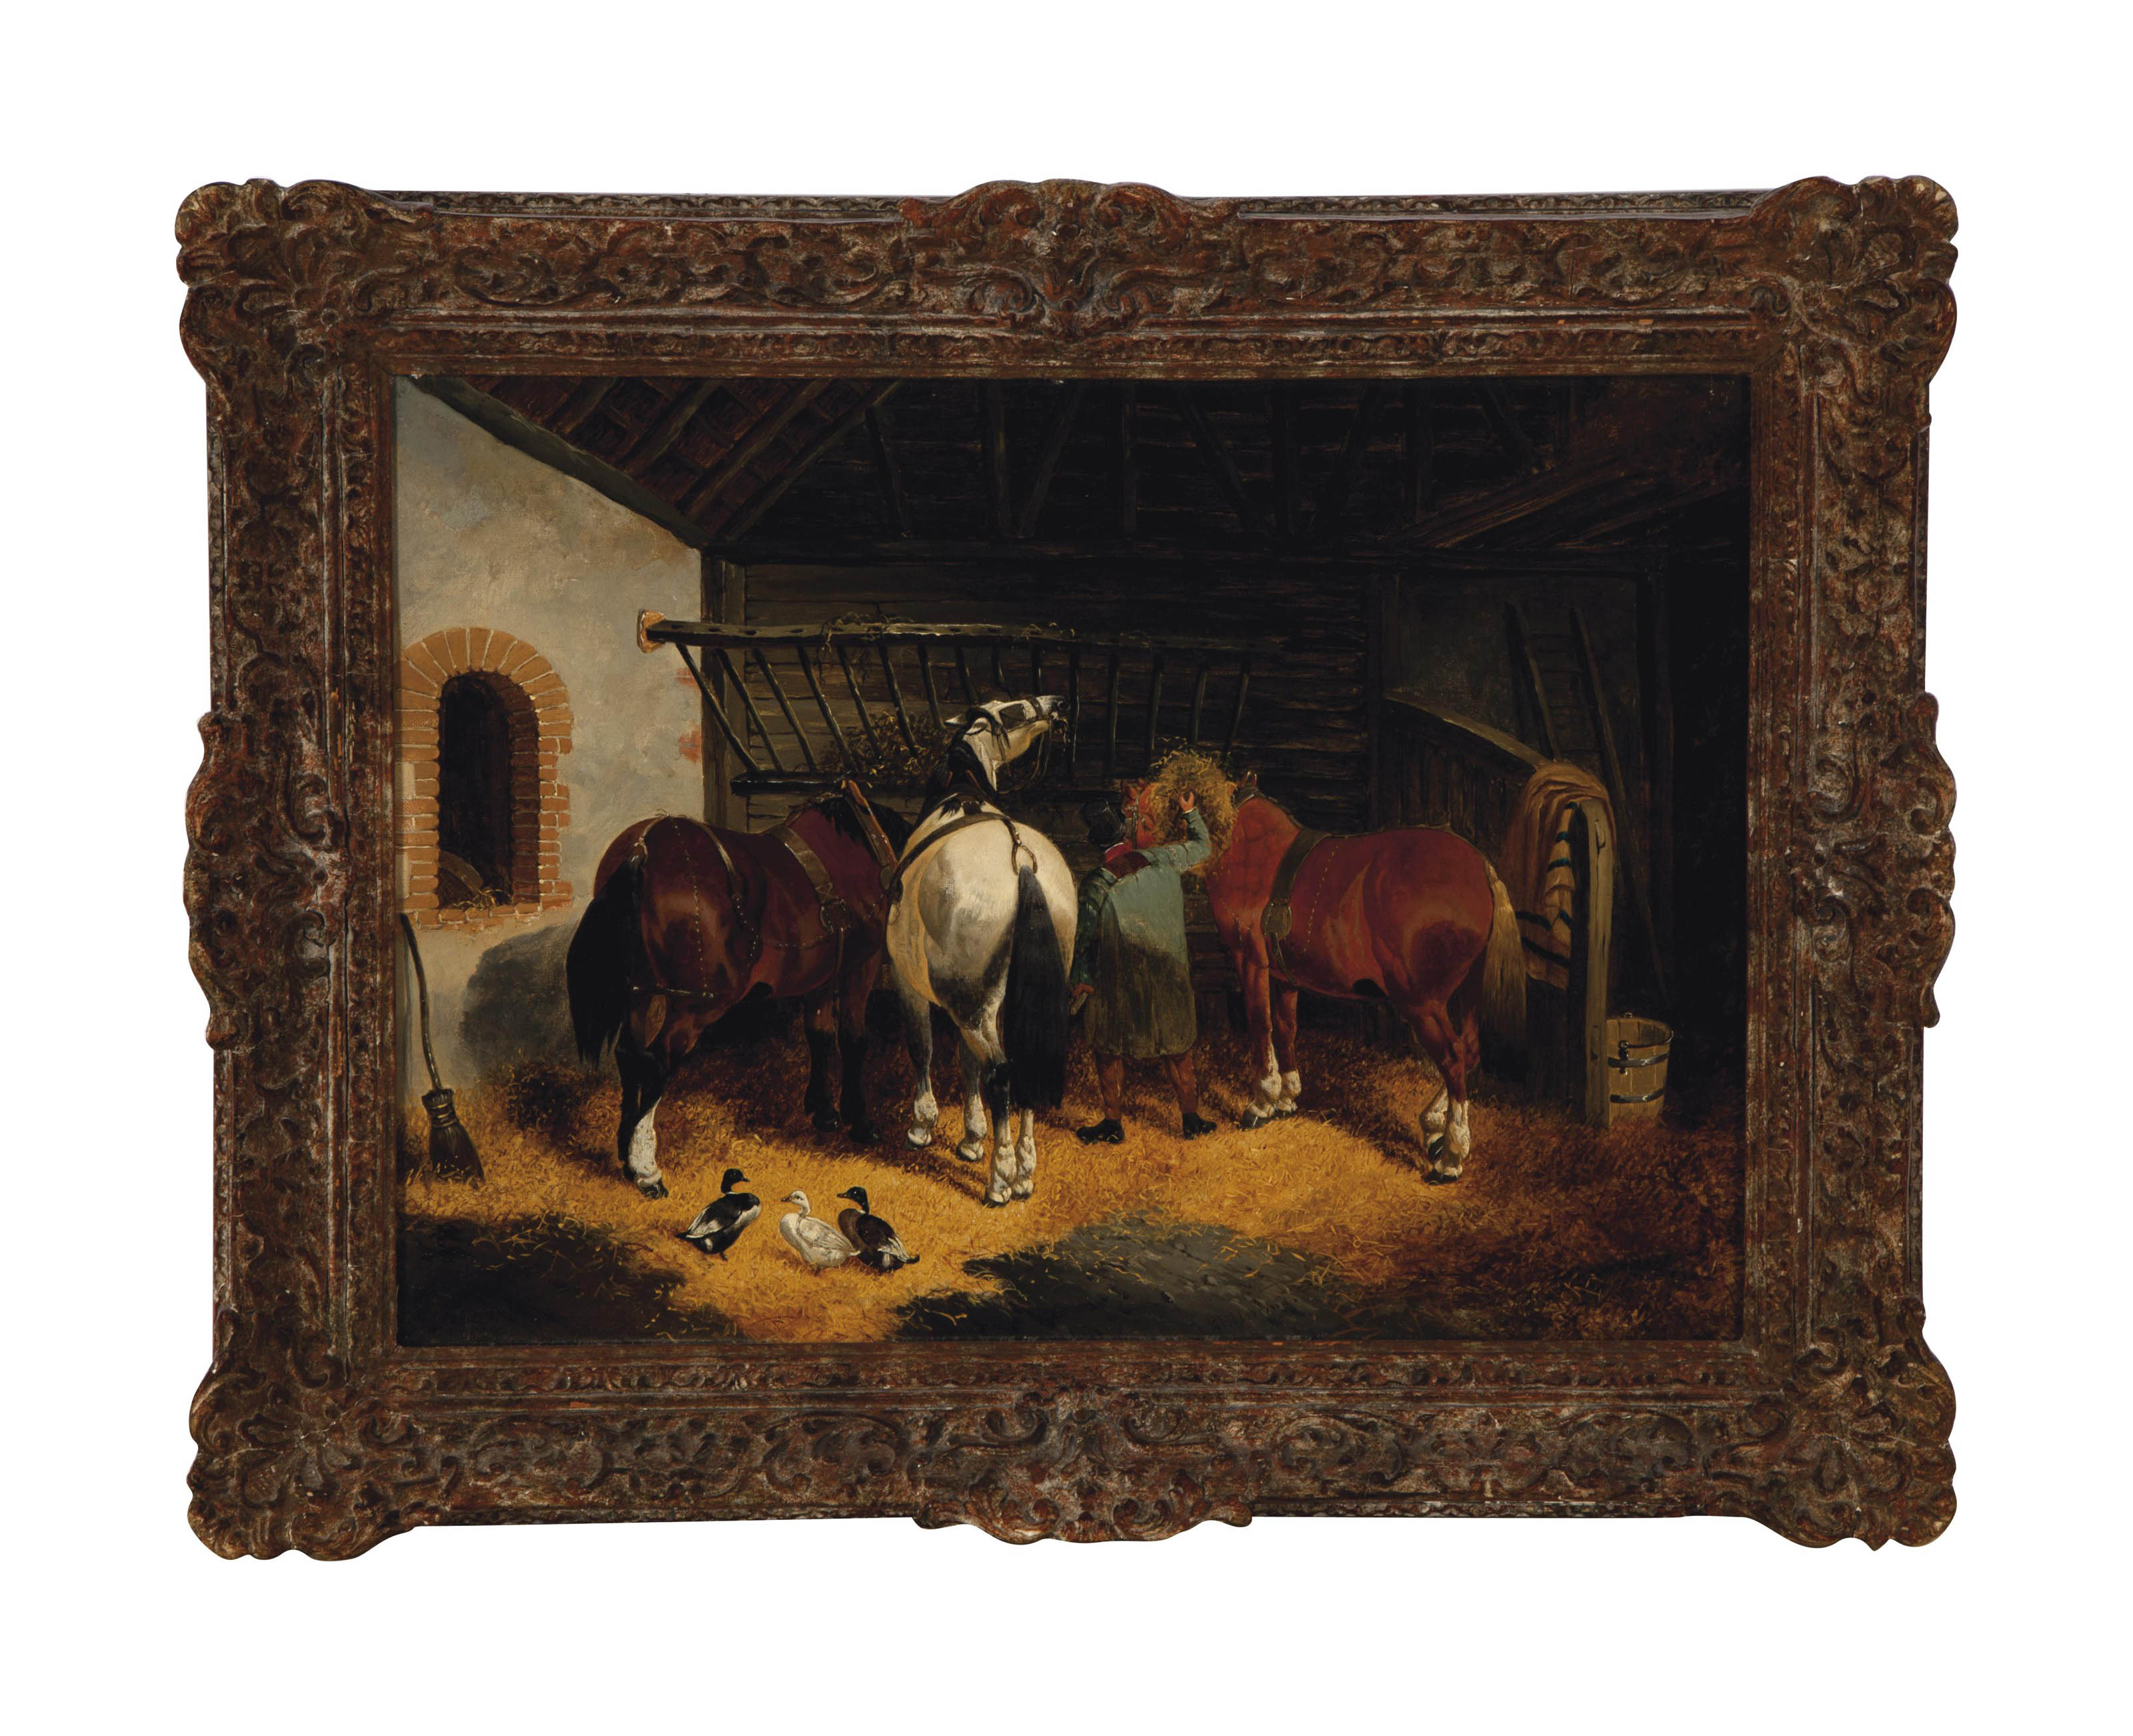 Resting in the stable after a day's work; and a companion painting